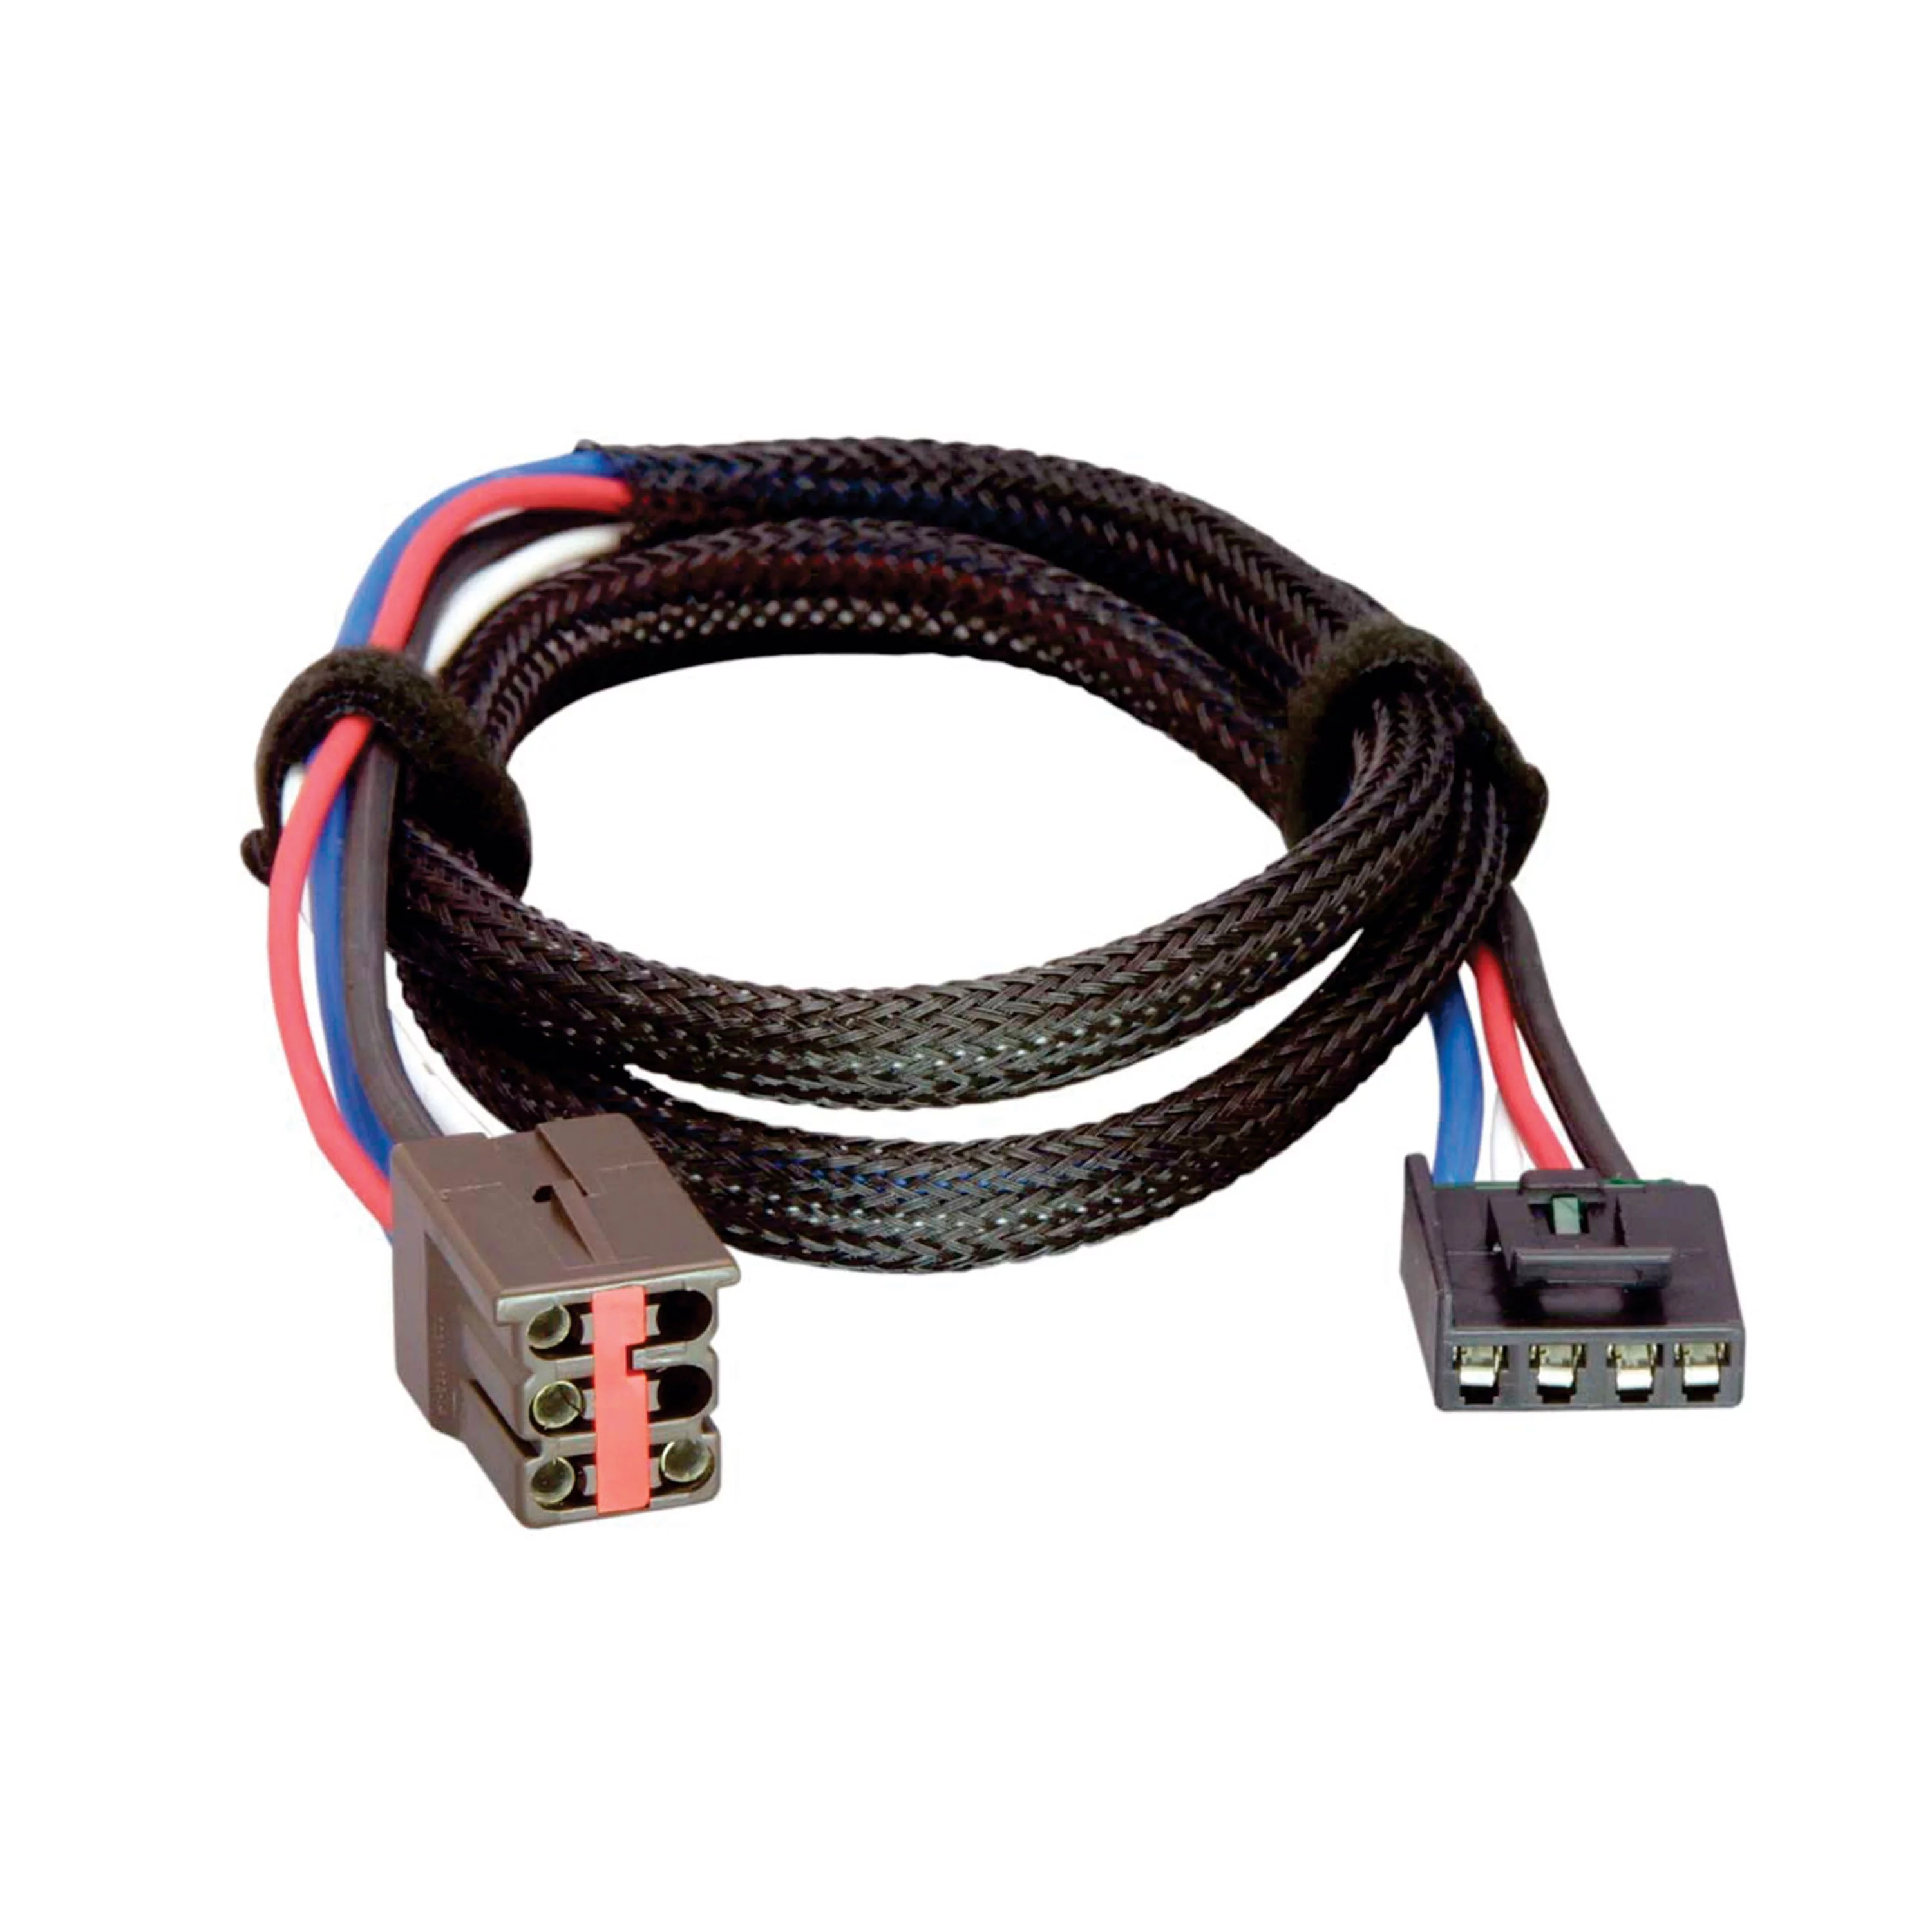 small resolution of tekonsha 3035 p trailer brake control wiring harness 2 plugs ford subwoofer cable to speaker wire adapter e 450 ford wiring harness adapter